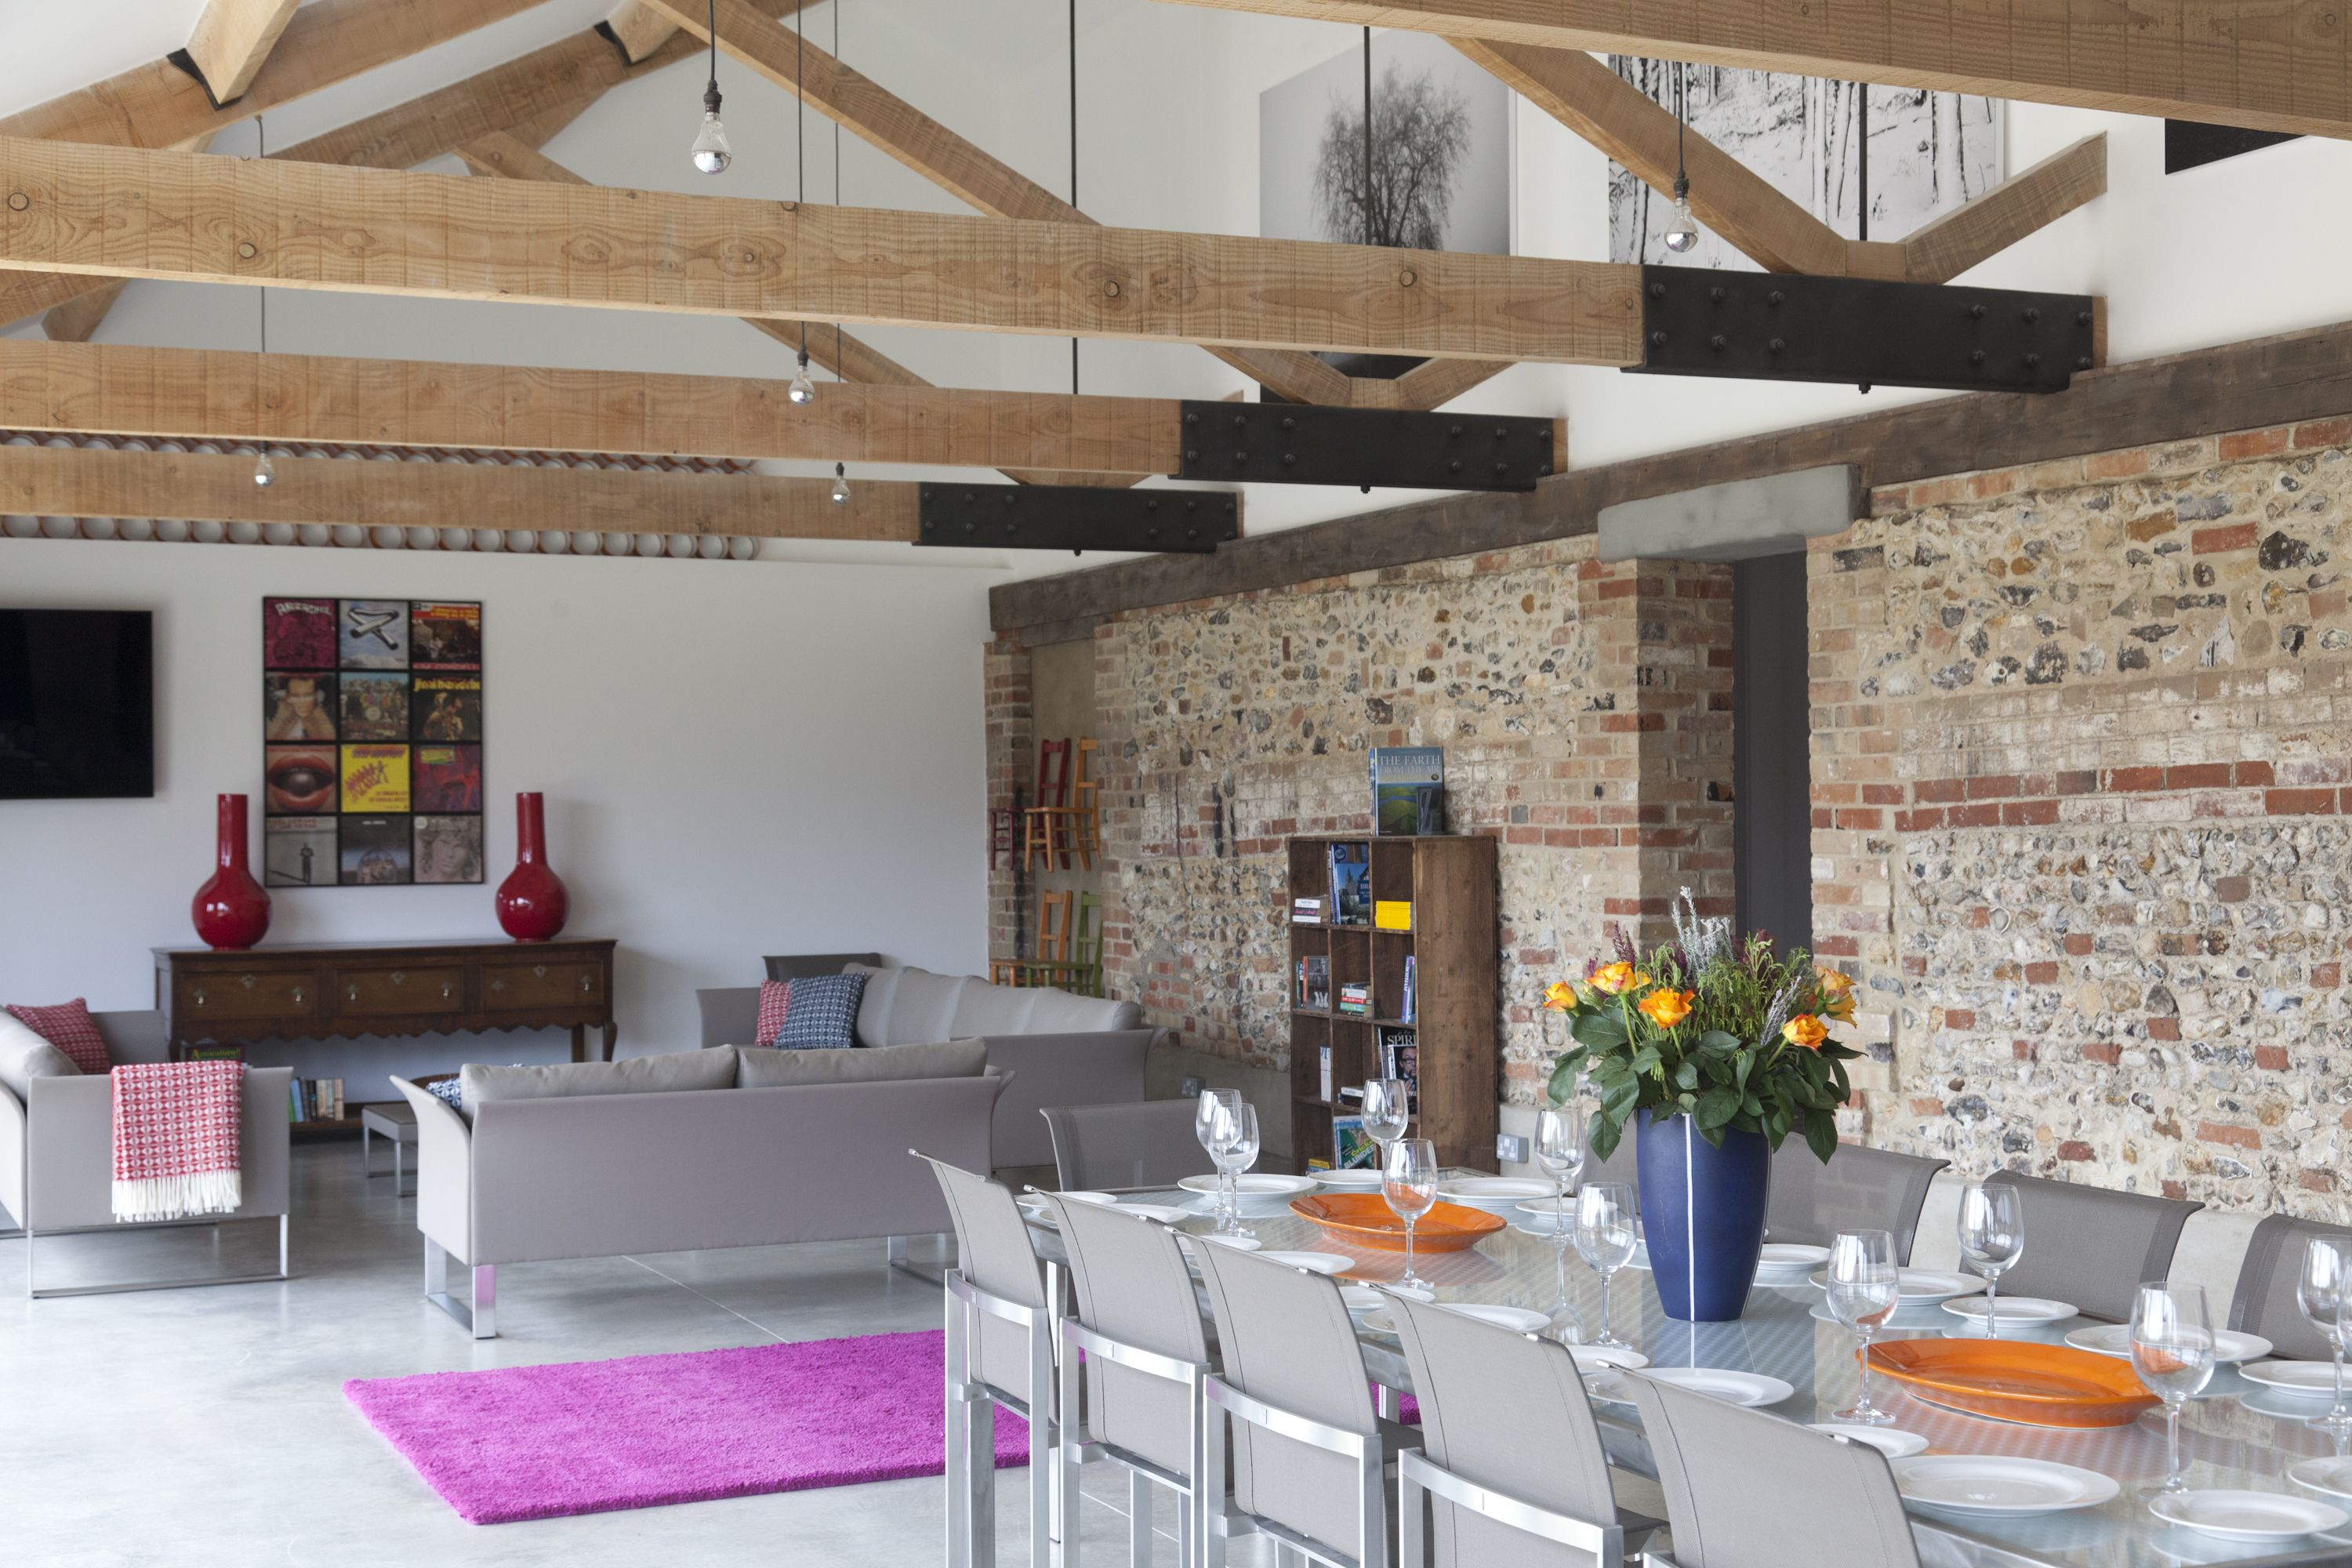 The Cattle Sheds Barn living, Furniture project plans